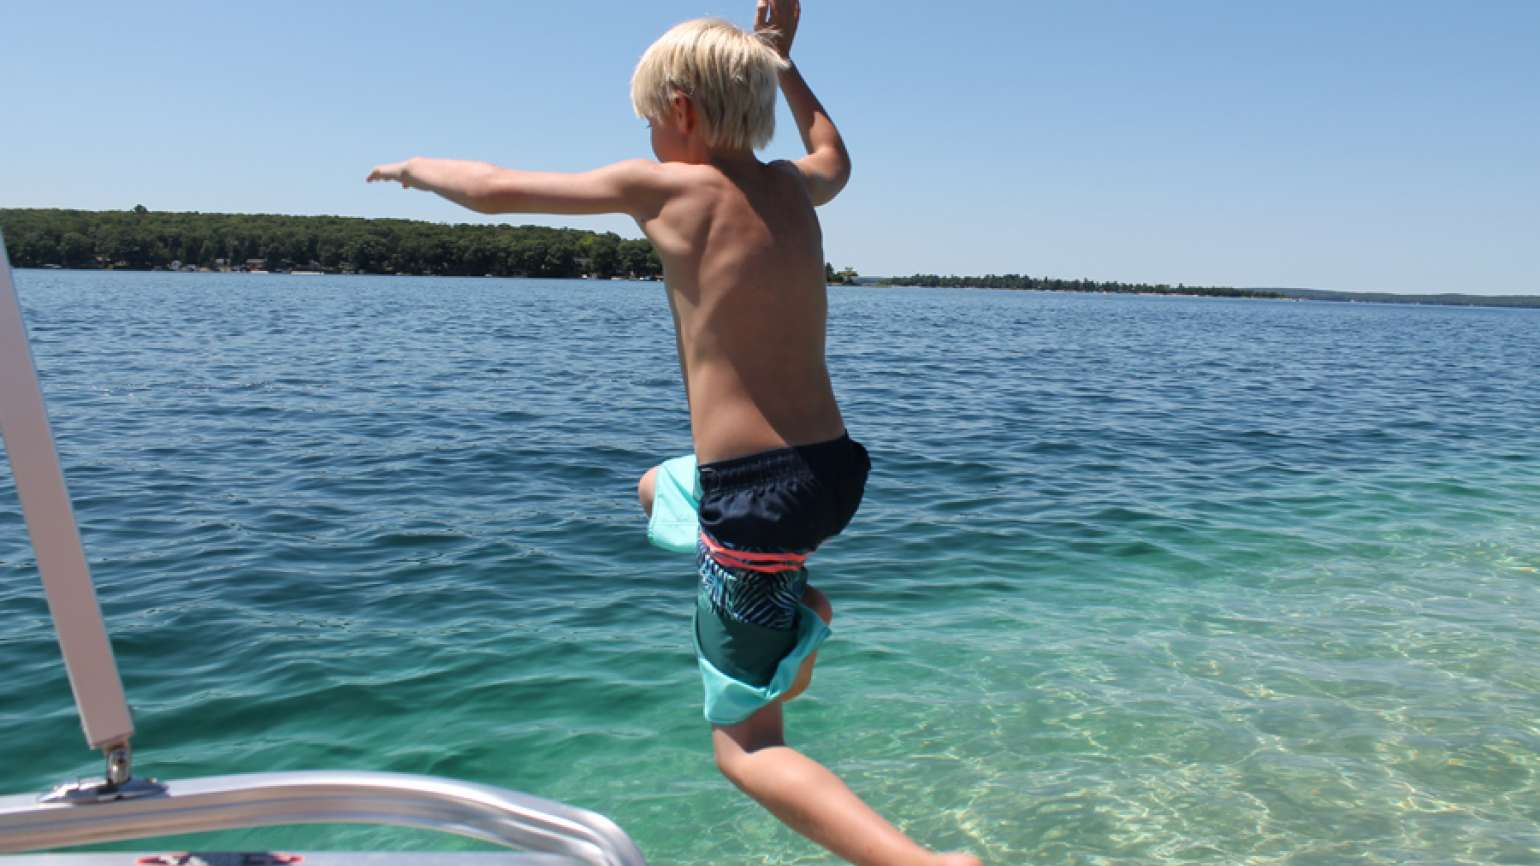 Shawnelle's son jumping off the boat into the lake in Michigan